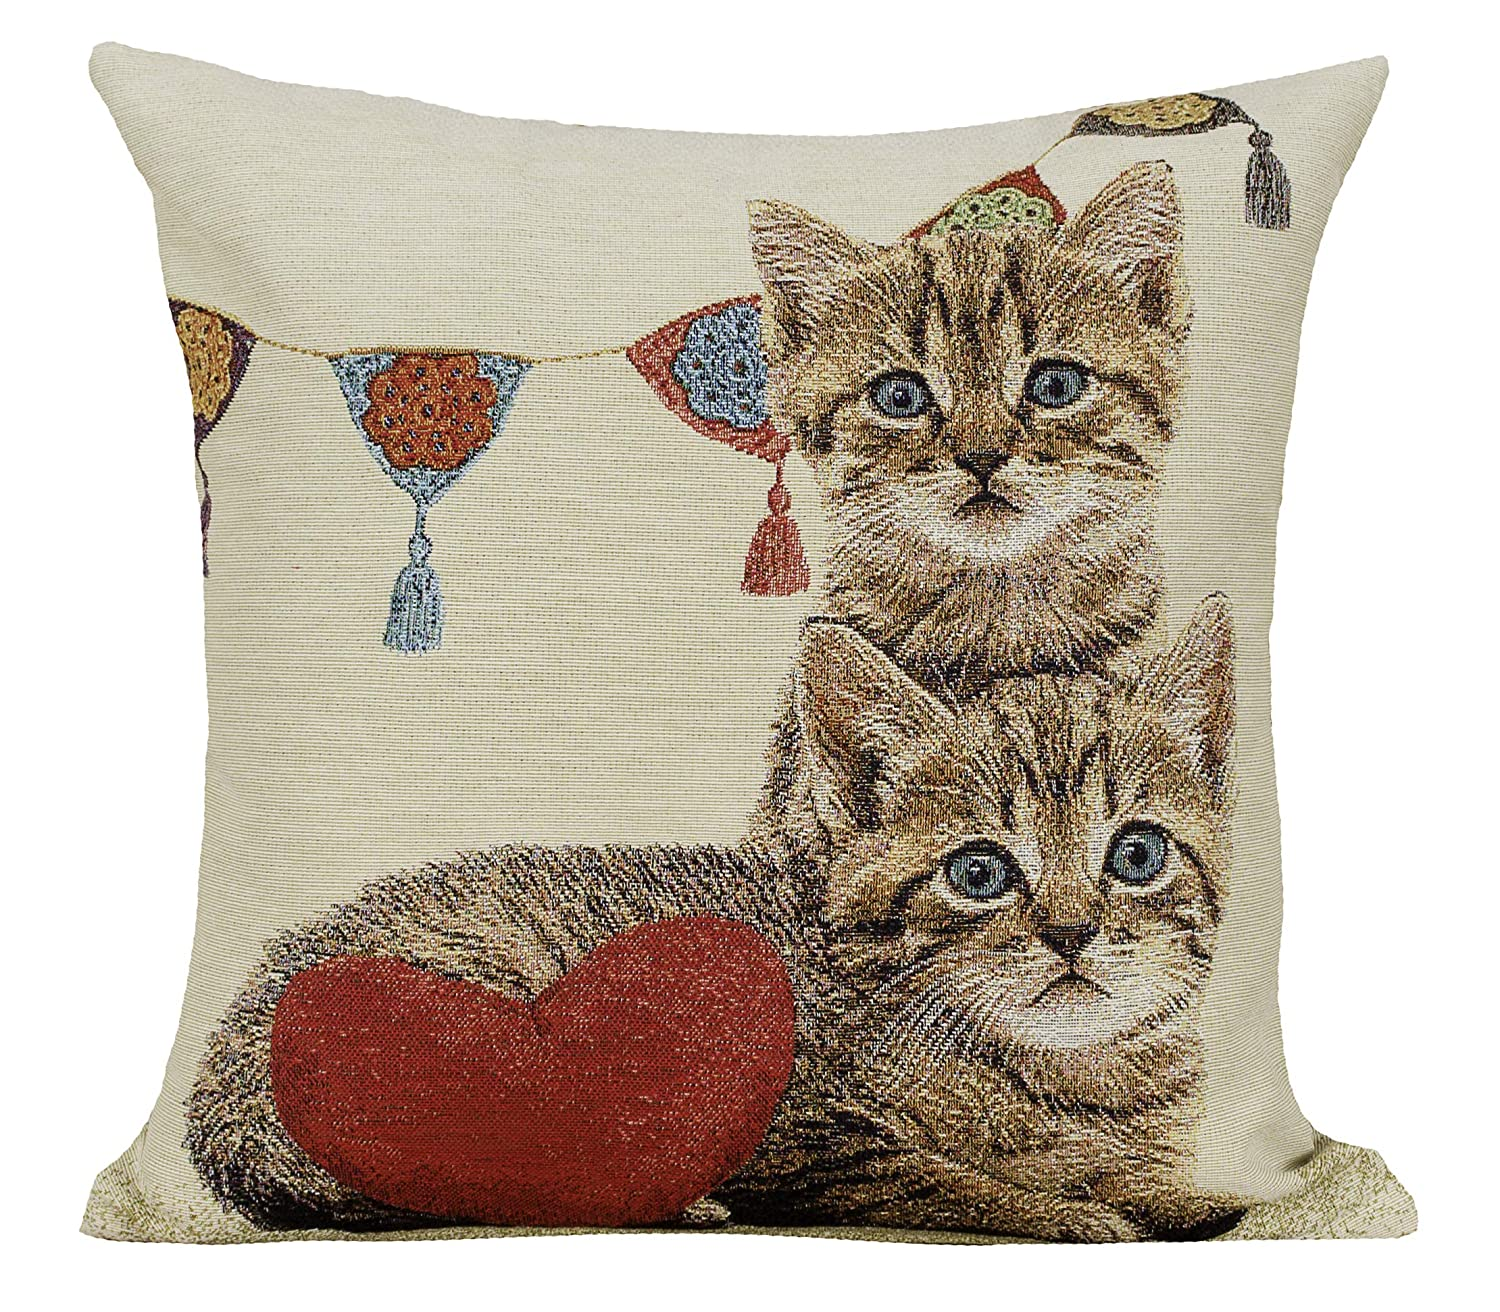 Astonishing Amber Textile Cat Tapestry Throw Pillow Covers Cases Decorative Cushion Covers Pillowcase Cushion Case For Sofa Couch 18 X18 Inches Two Cats Heart Pabps2019 Chair Design Images Pabps2019Com